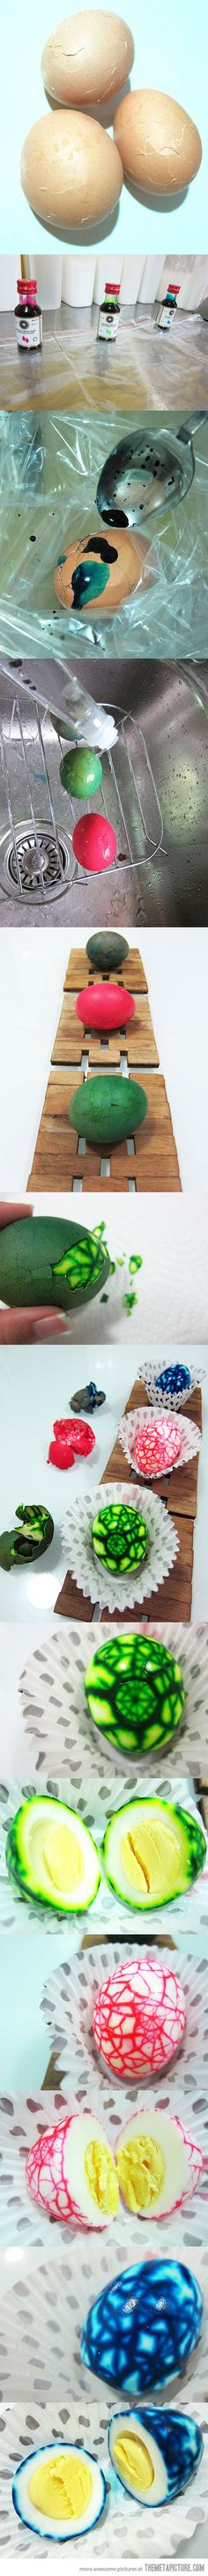 egg-colouring